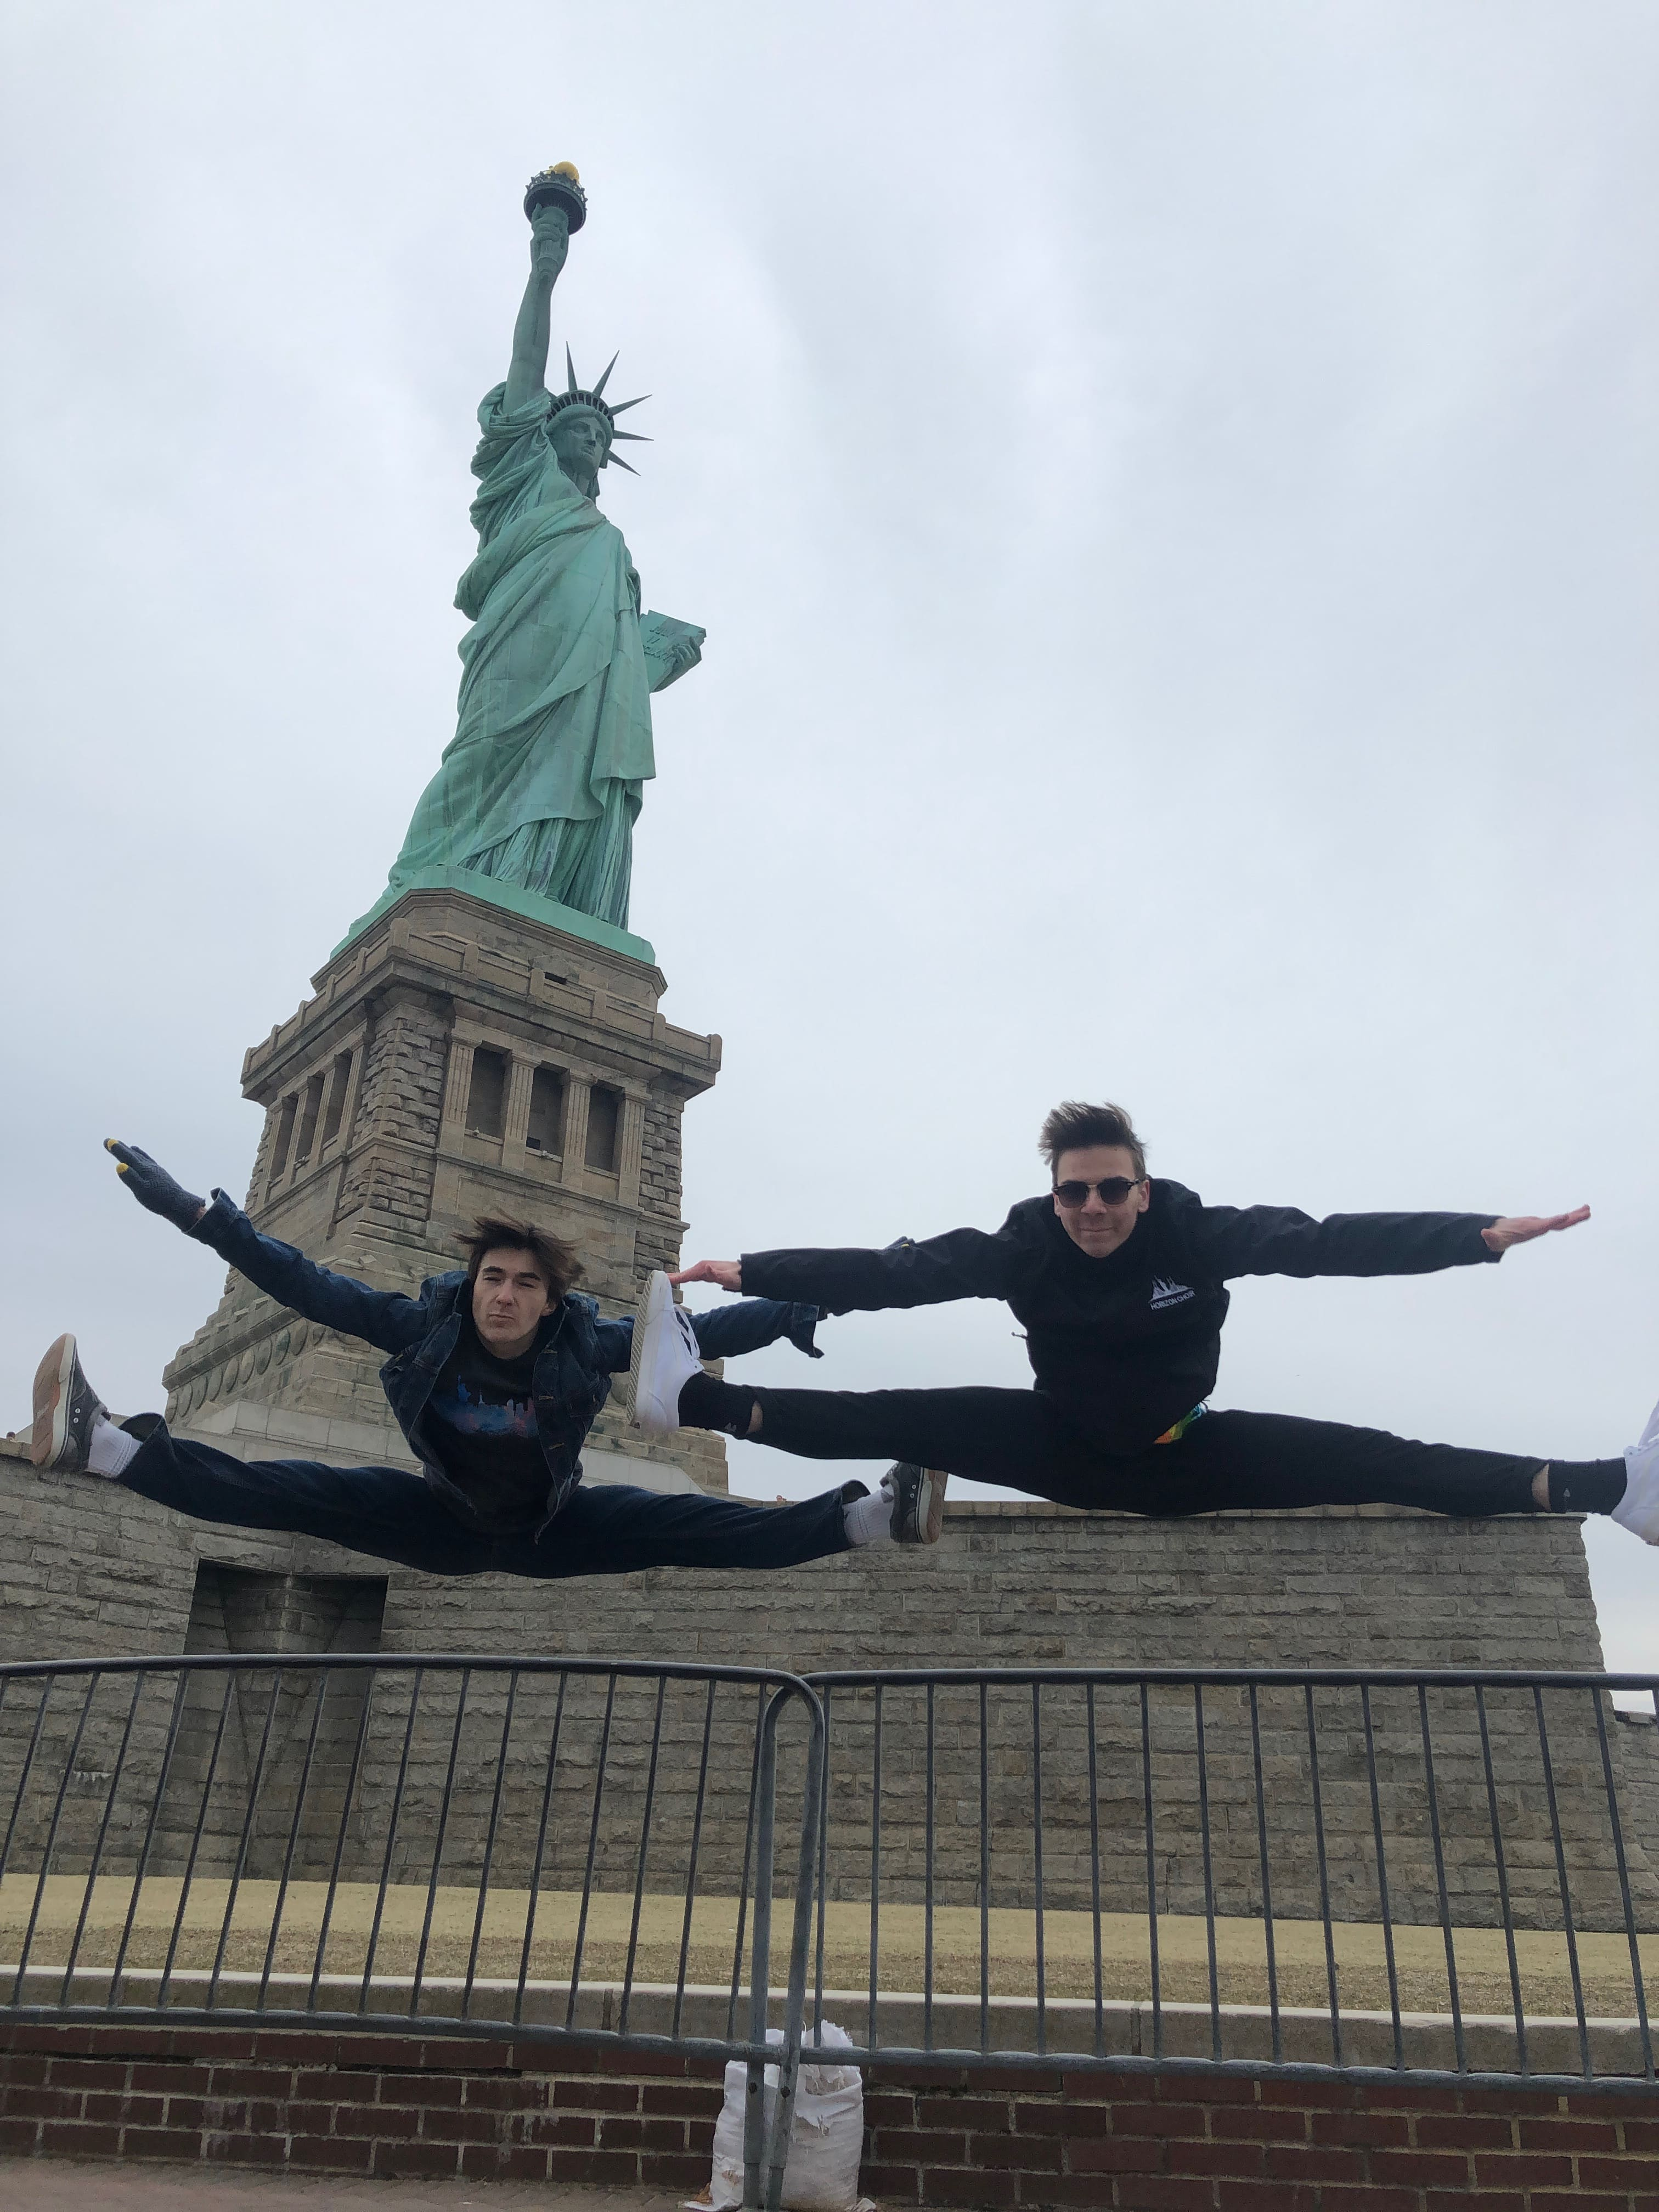 dance students doing a flying split in front of statue of liberty during new york student trip